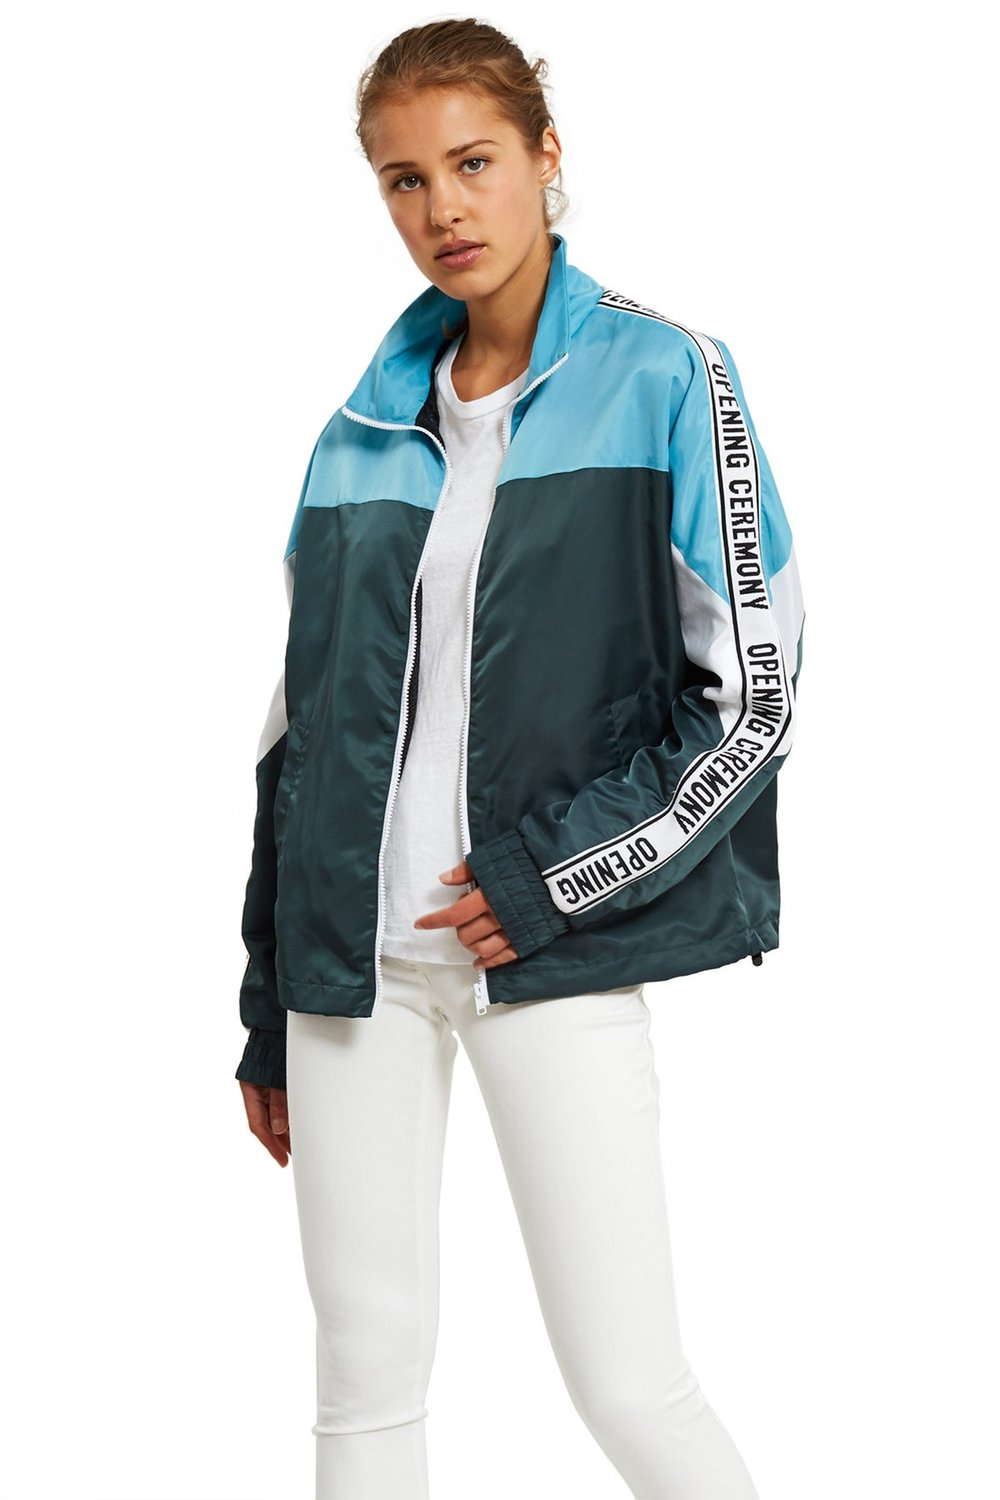 CNK-Opening-Ceremony-Track-Jacket-5.jpg